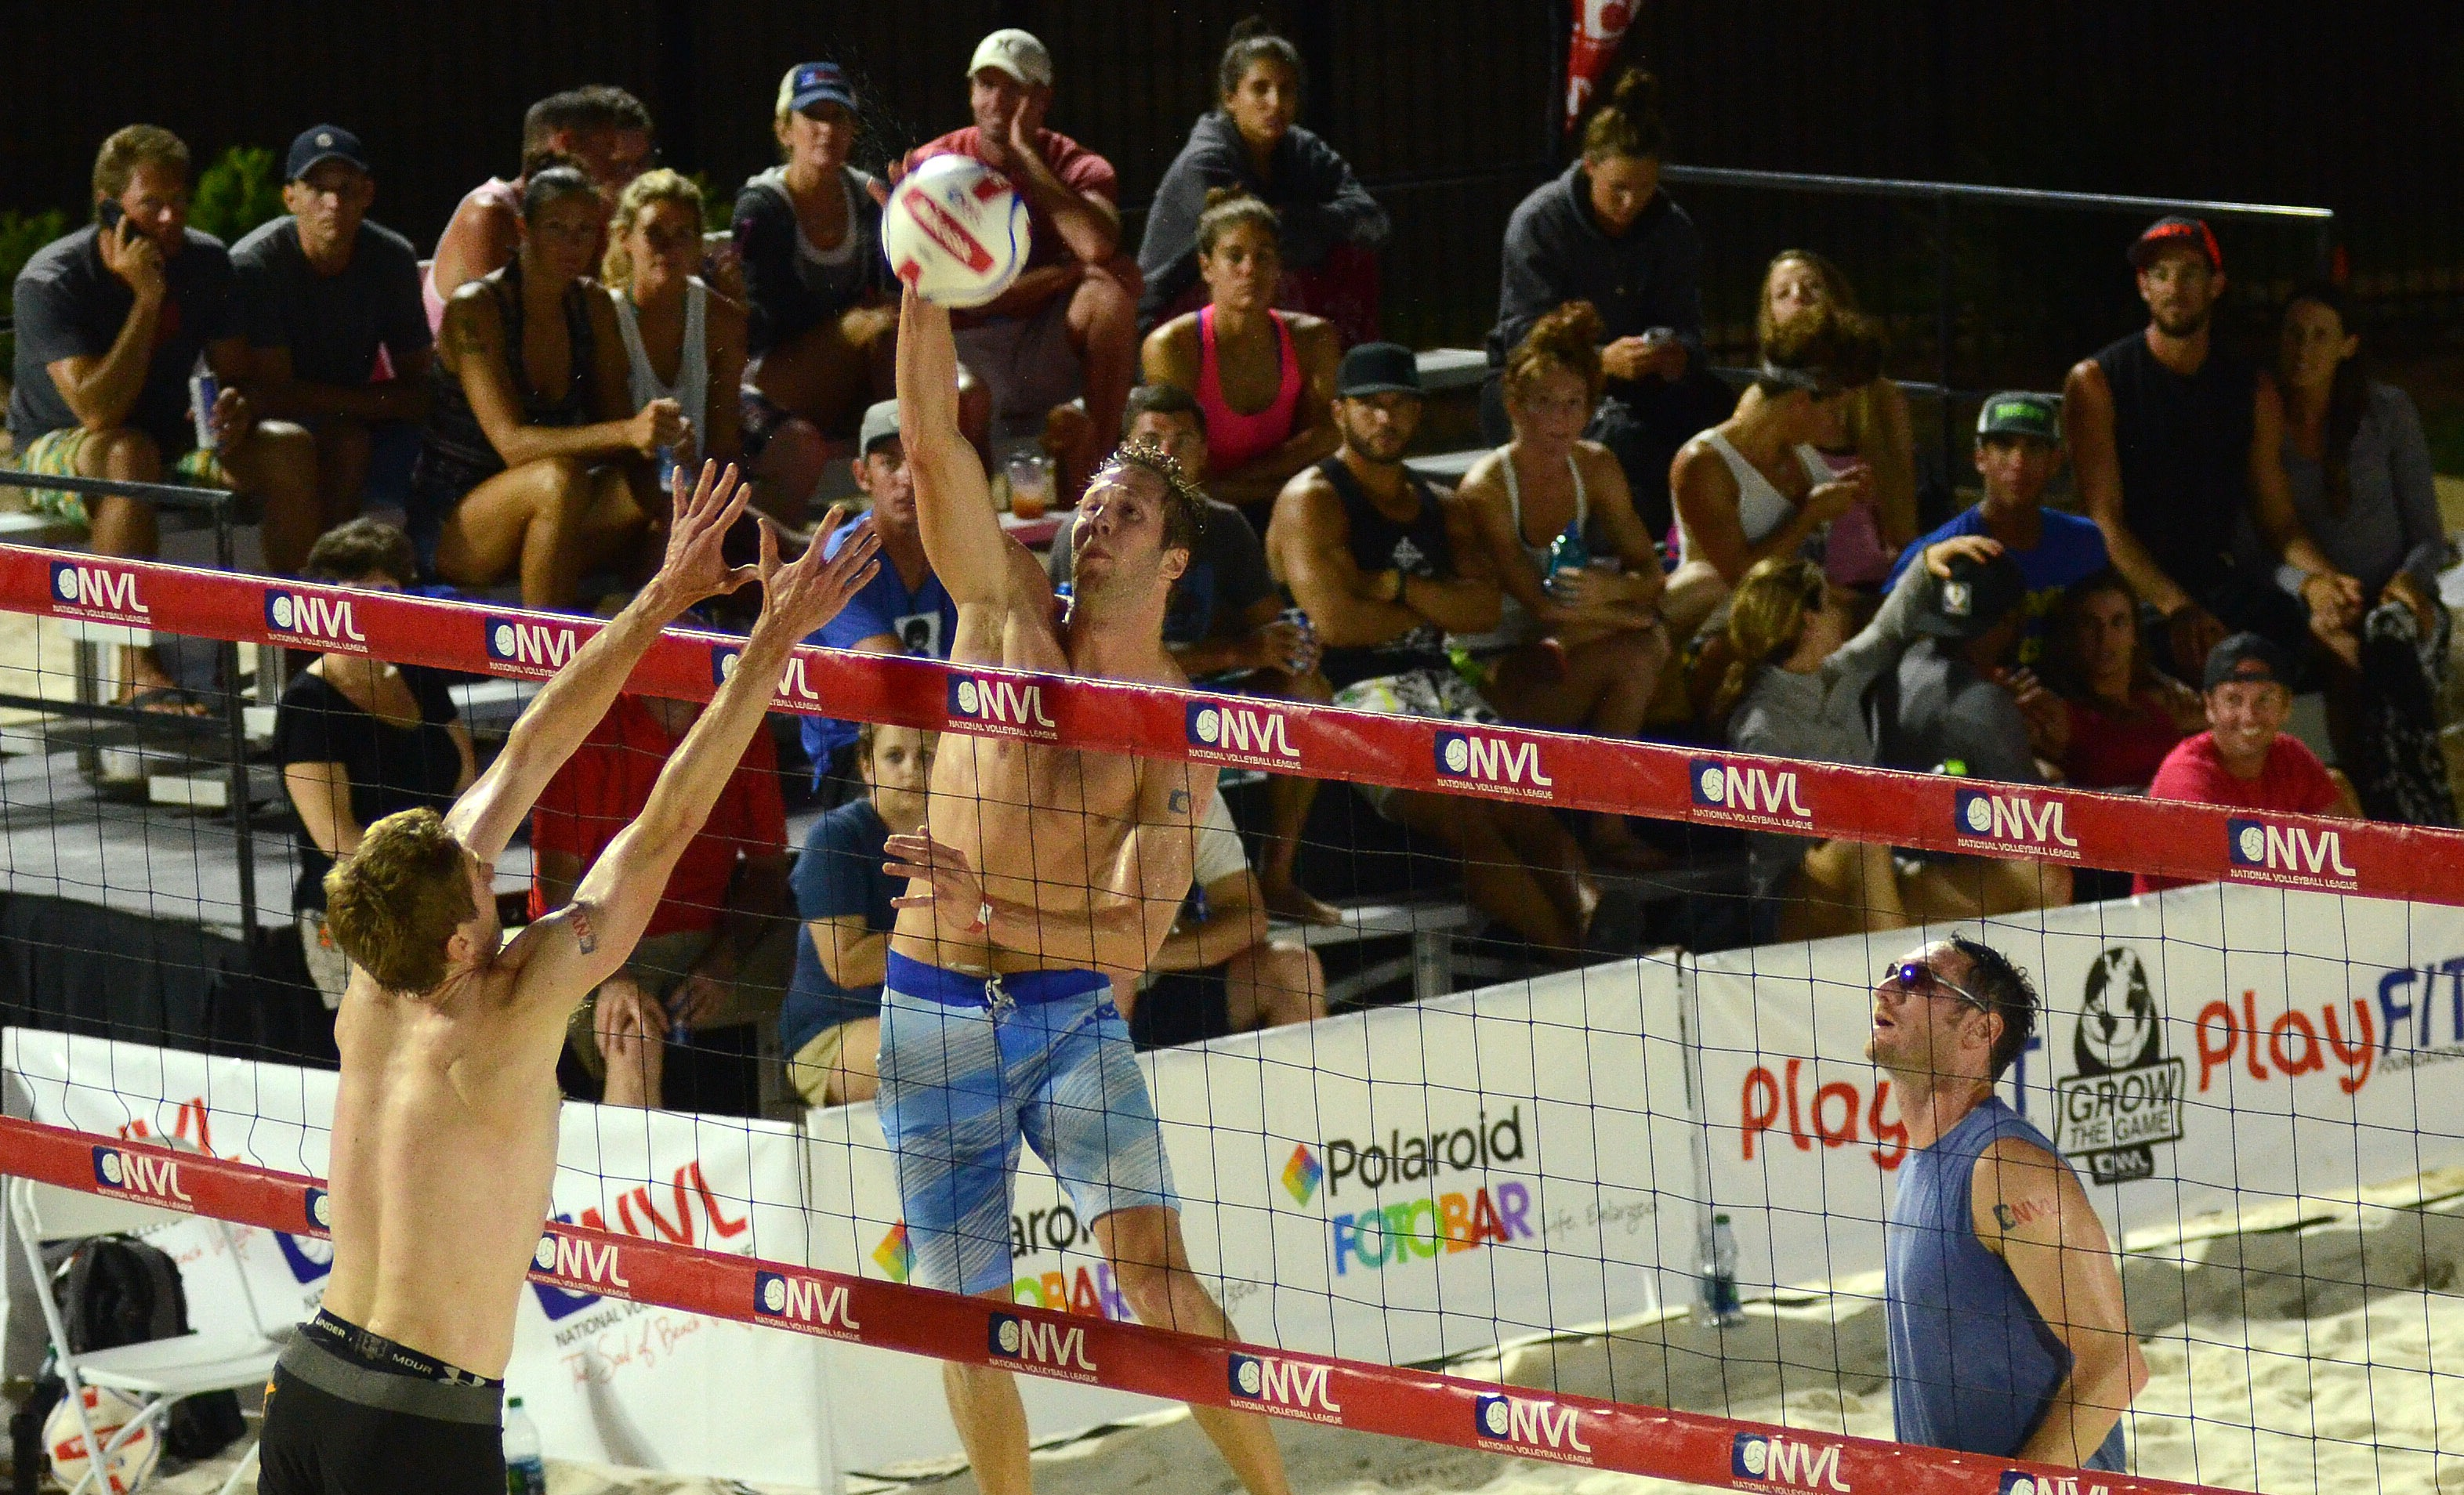 National Volleyball League Announces 2015 Pro Tour Schedule